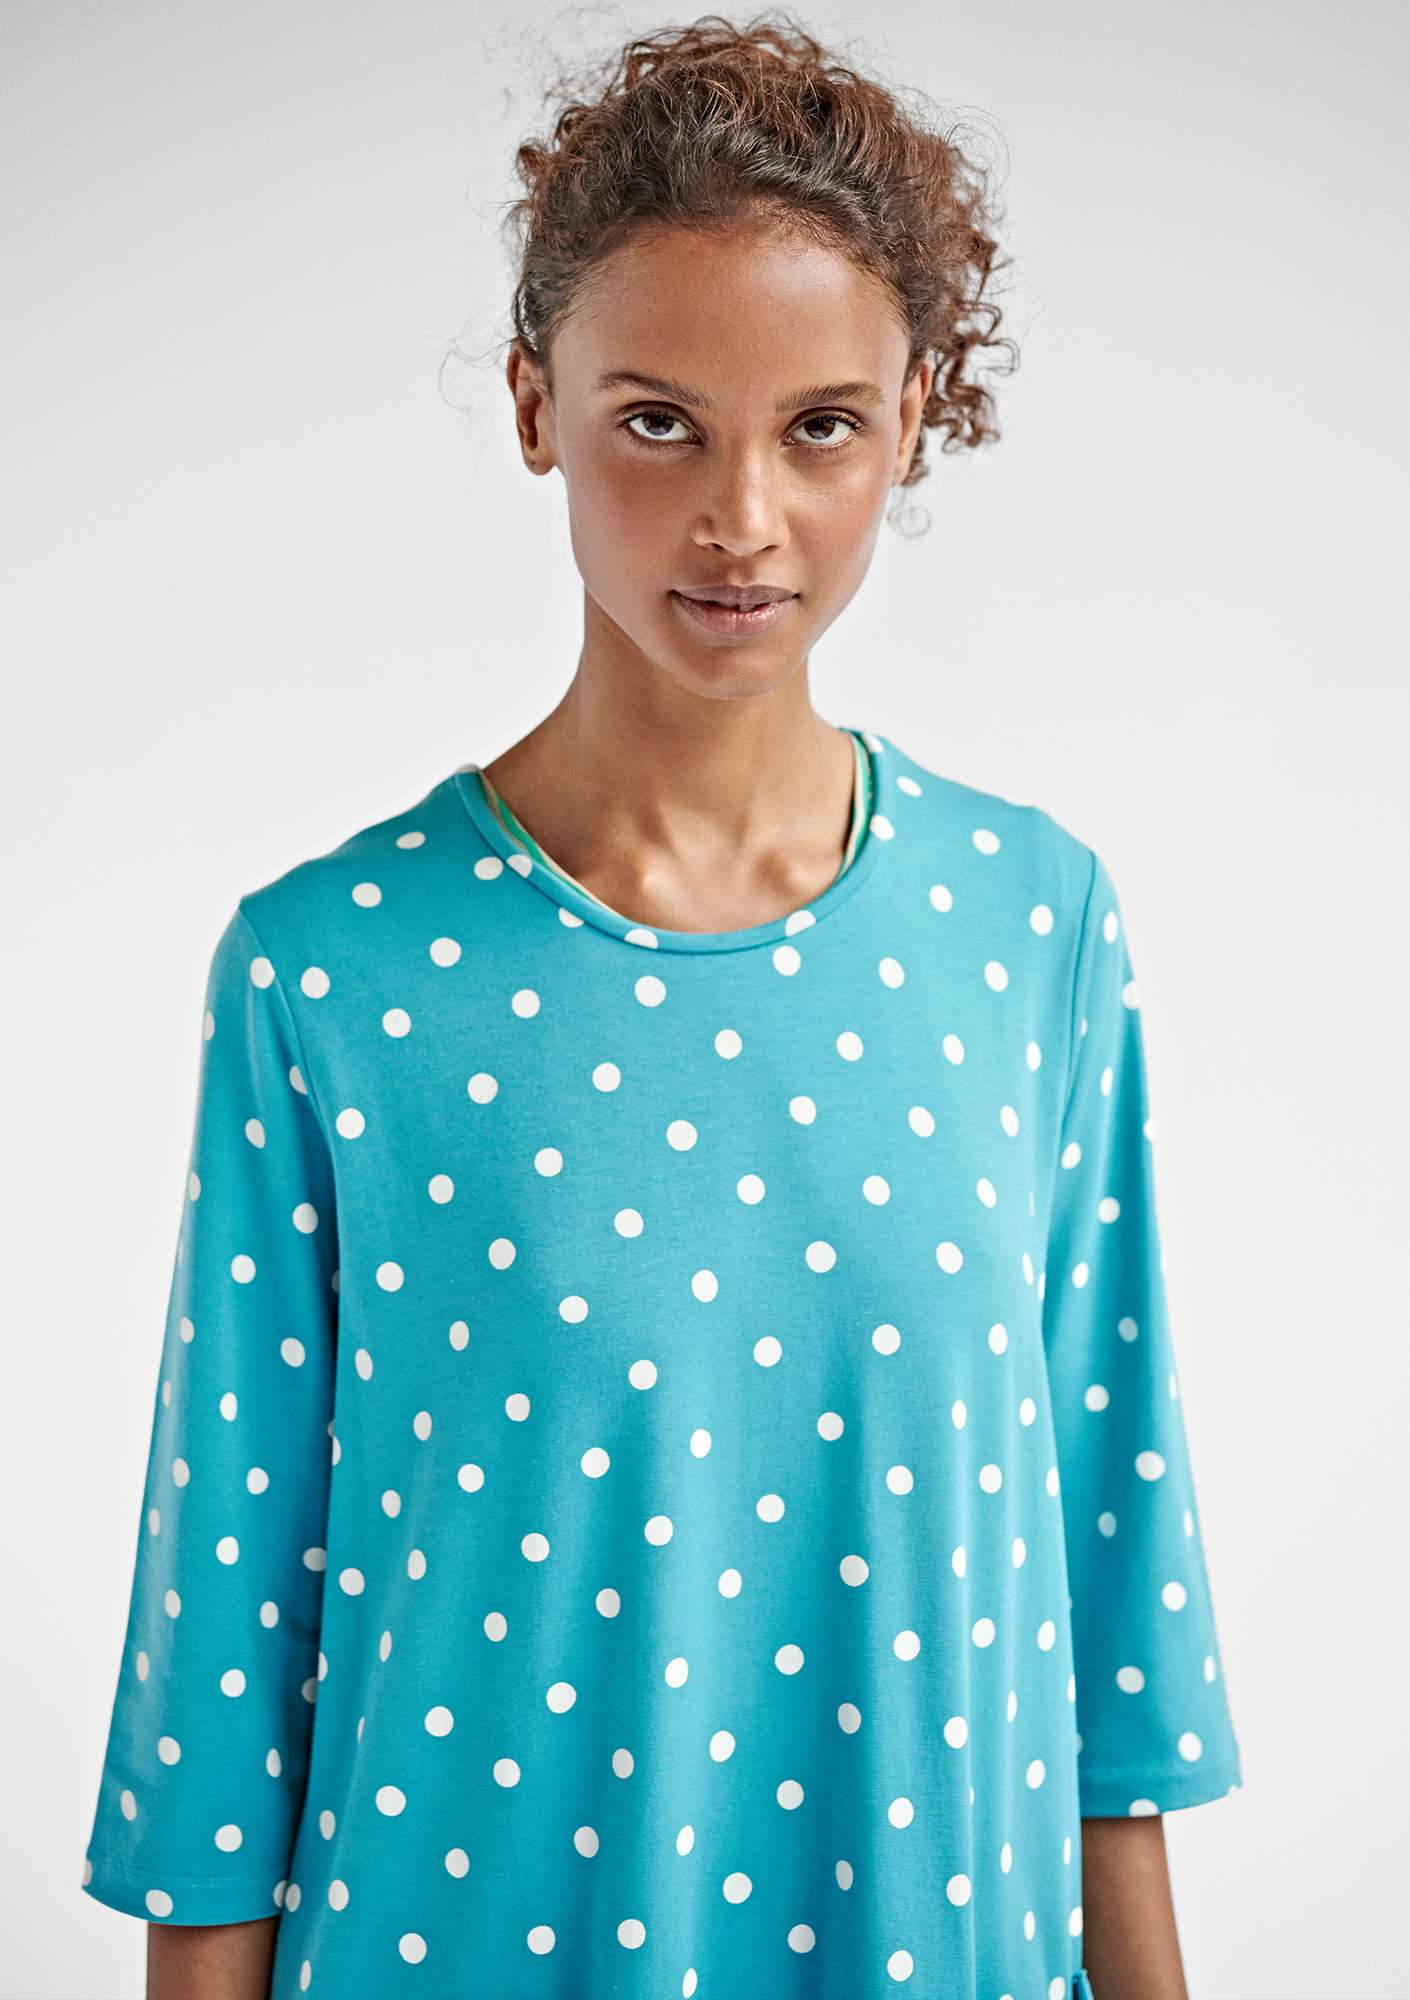 5e3697f4e5 DOT dress in modal/organic cotton/elastane turquoise/patterned